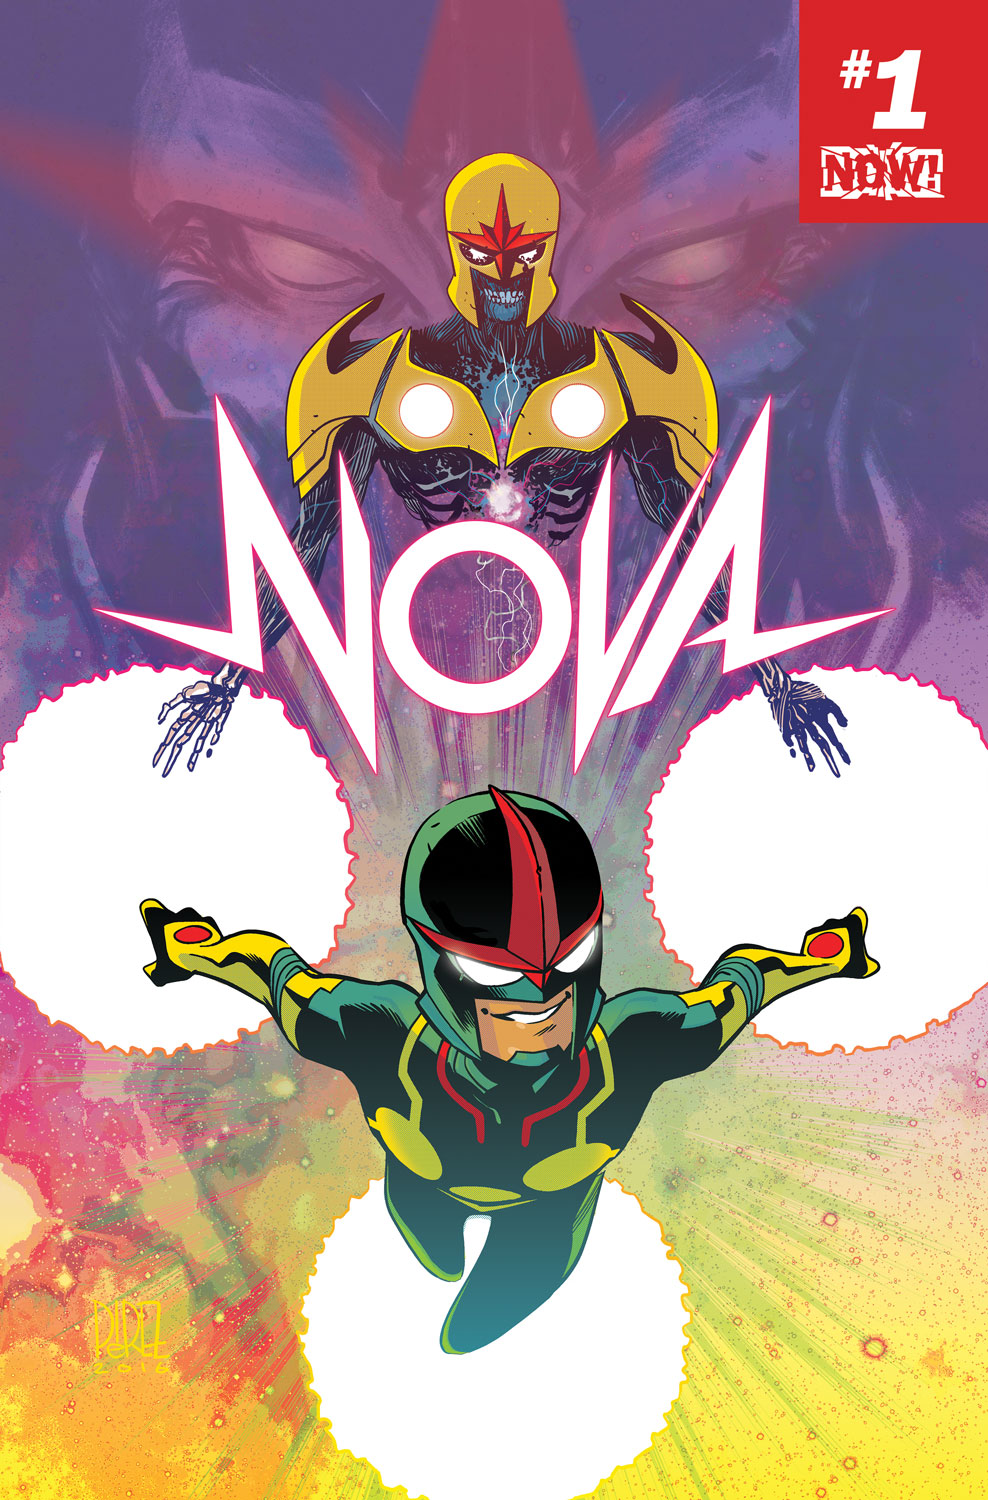 NOVA #1 Brings You the Return of a Long Lost Hero!